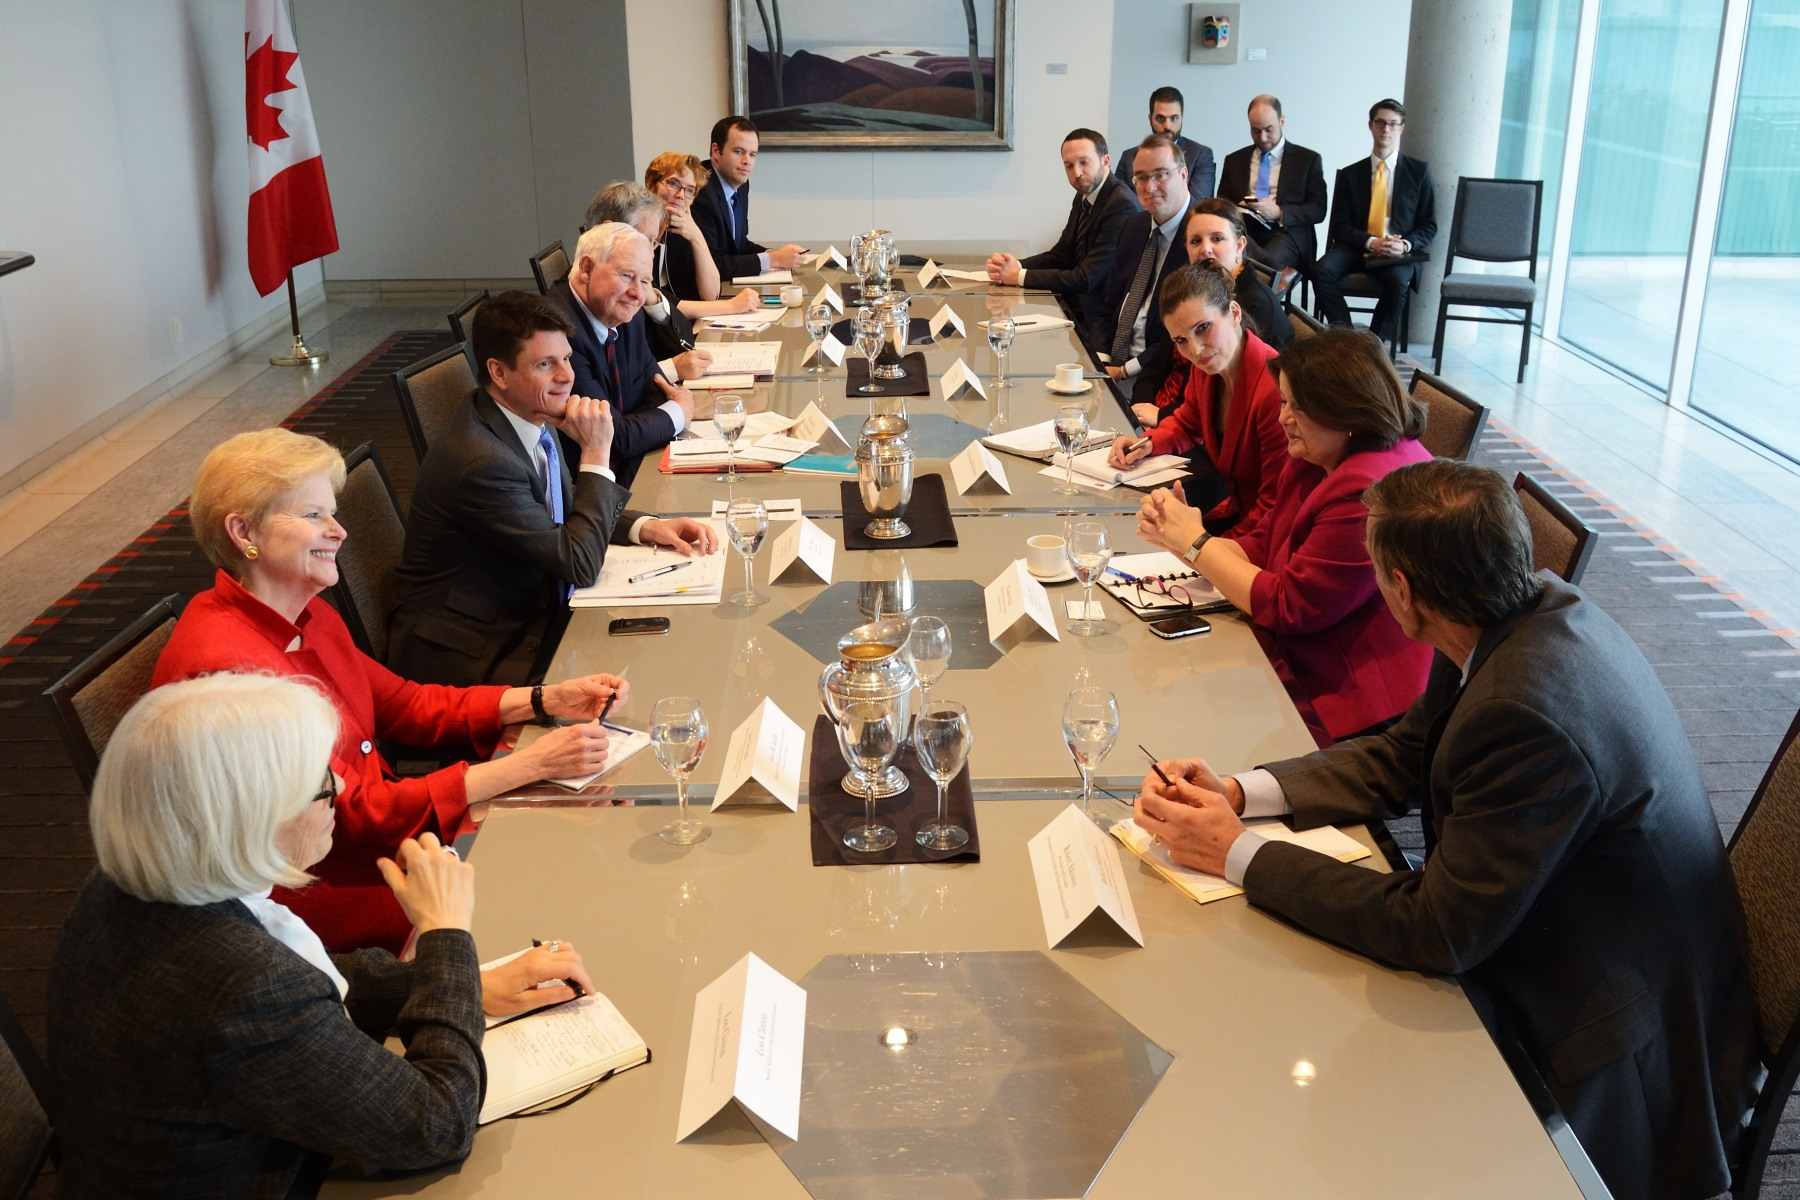 Later in the afternoon, His Excellency participated in a round-table discussion with leading Canadian educators, innovators, and entrepreneurs working in Washington, D.C.